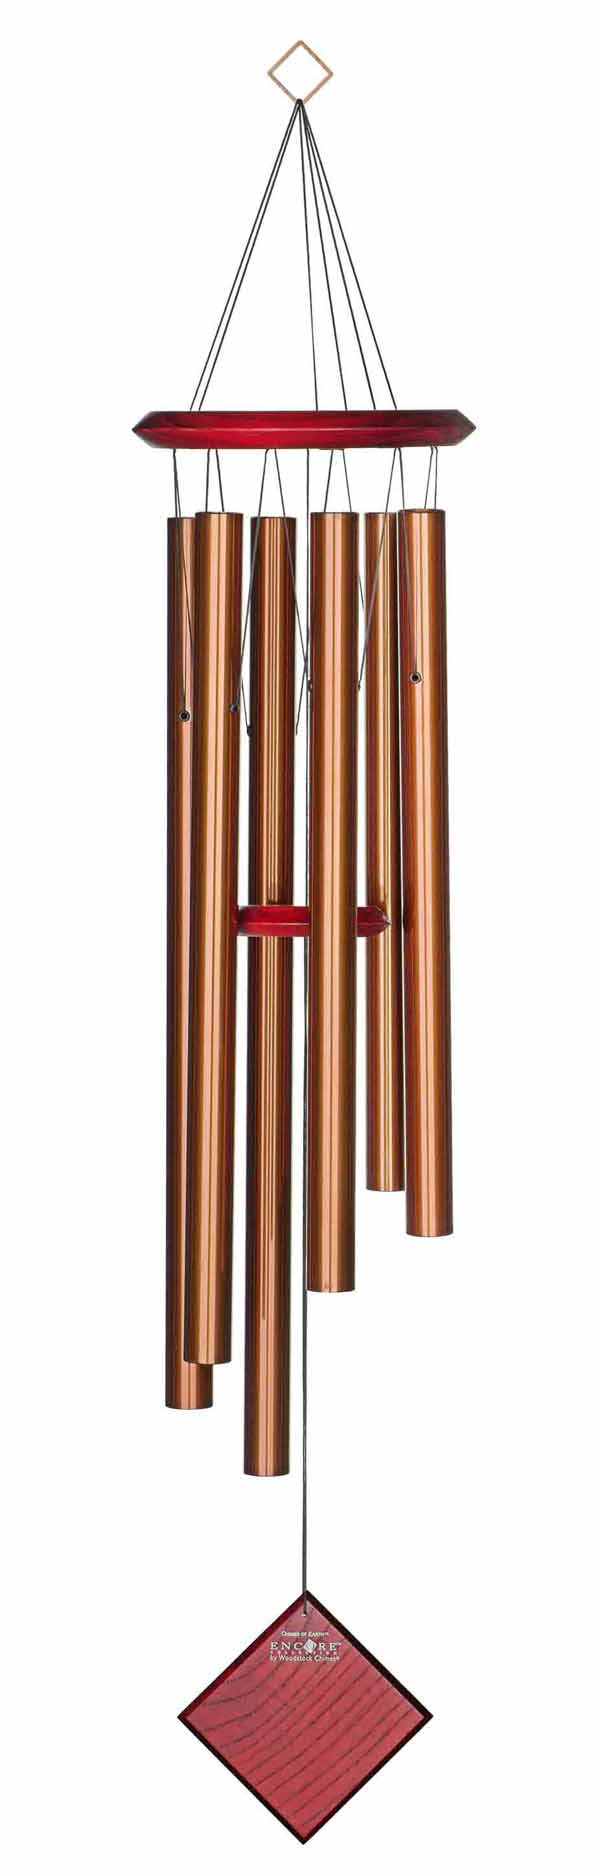 Woodstock Chimes of Earth - Bronze